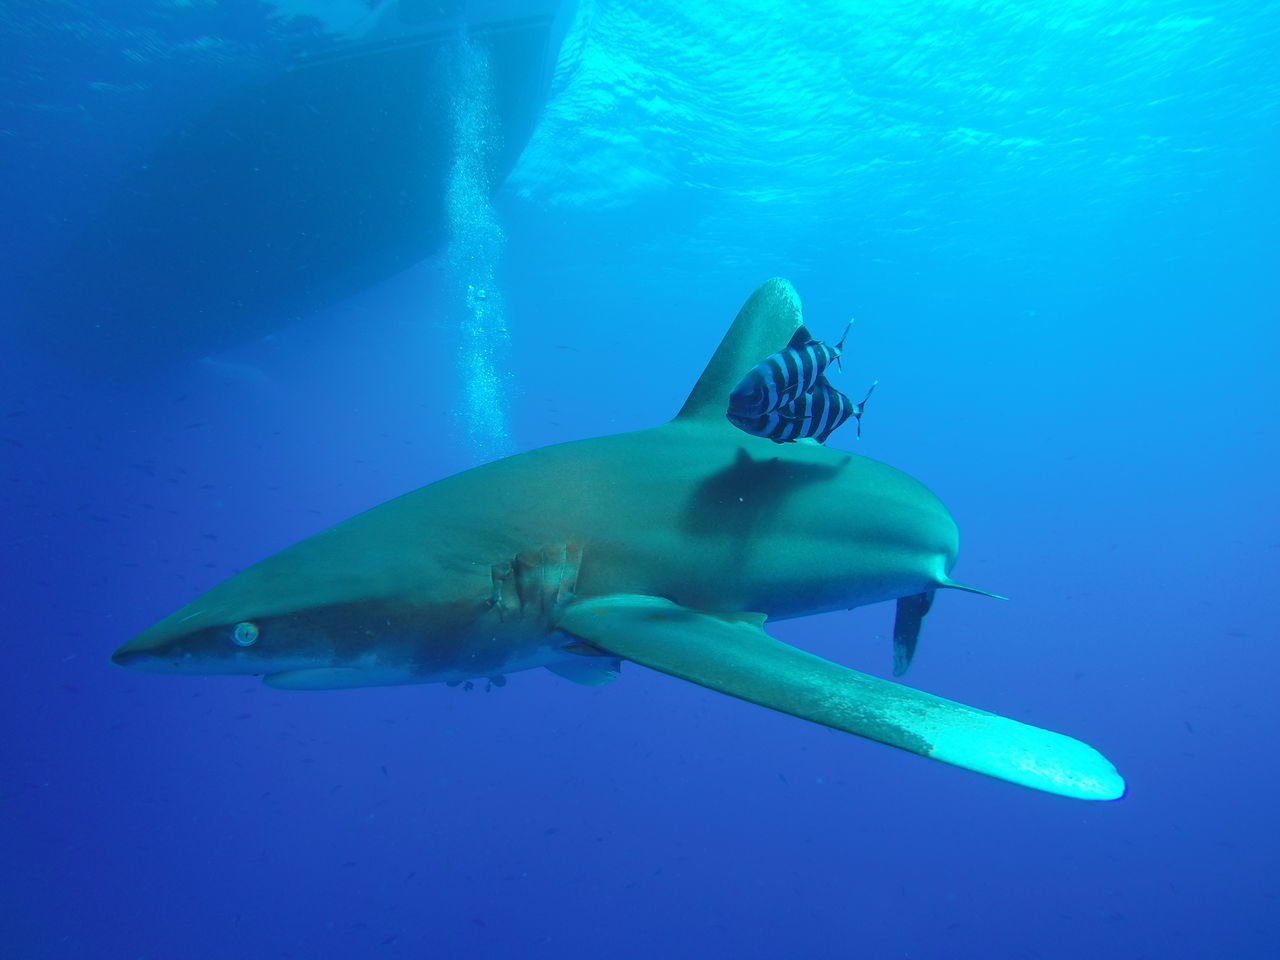 A Longimanus shark checking me out... Animals In The Wild Beauty In Nature Blue Depth Diving Divingphotography Egypt Elegant Fish Longimanus Nature Nature Ocean Pilot Fish Predator Red Sea SCUBA Scuba Diving Sea UnderSea Underwater Underwater Diving Underwater Photography Water Wildlife